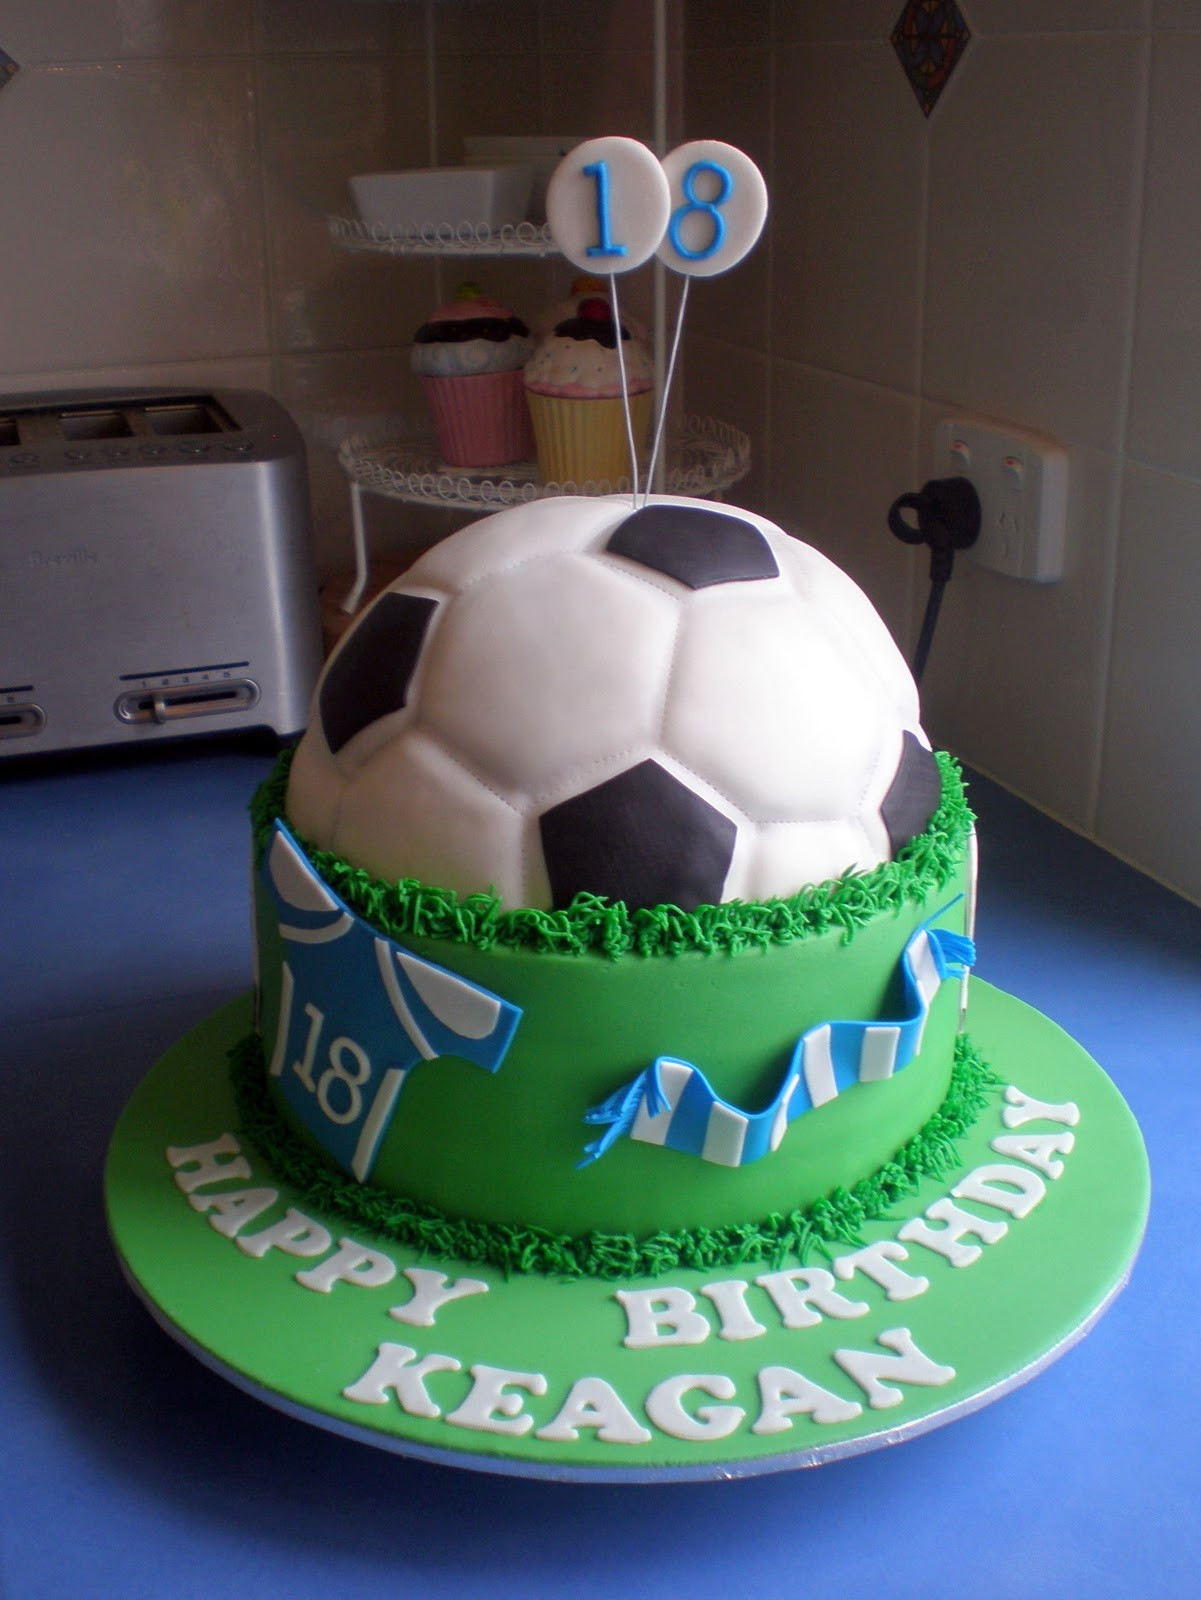 Best ideas about Football Birthday Cake . Save or Pin Sugar Siren Cakes Mackay Soccer Football Birthday Cake Now.